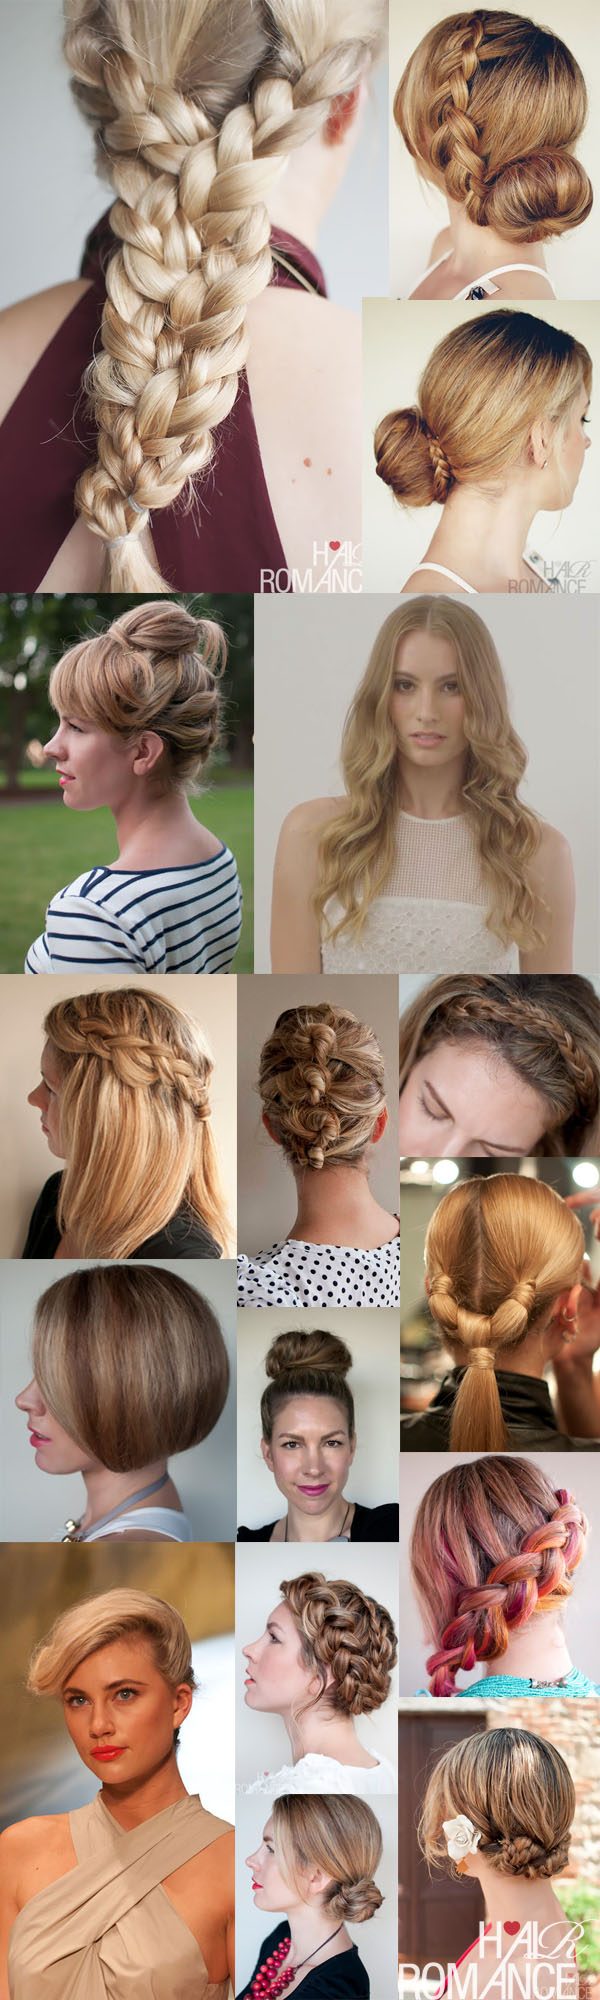 Hair Romance - Hairstyle tutorials